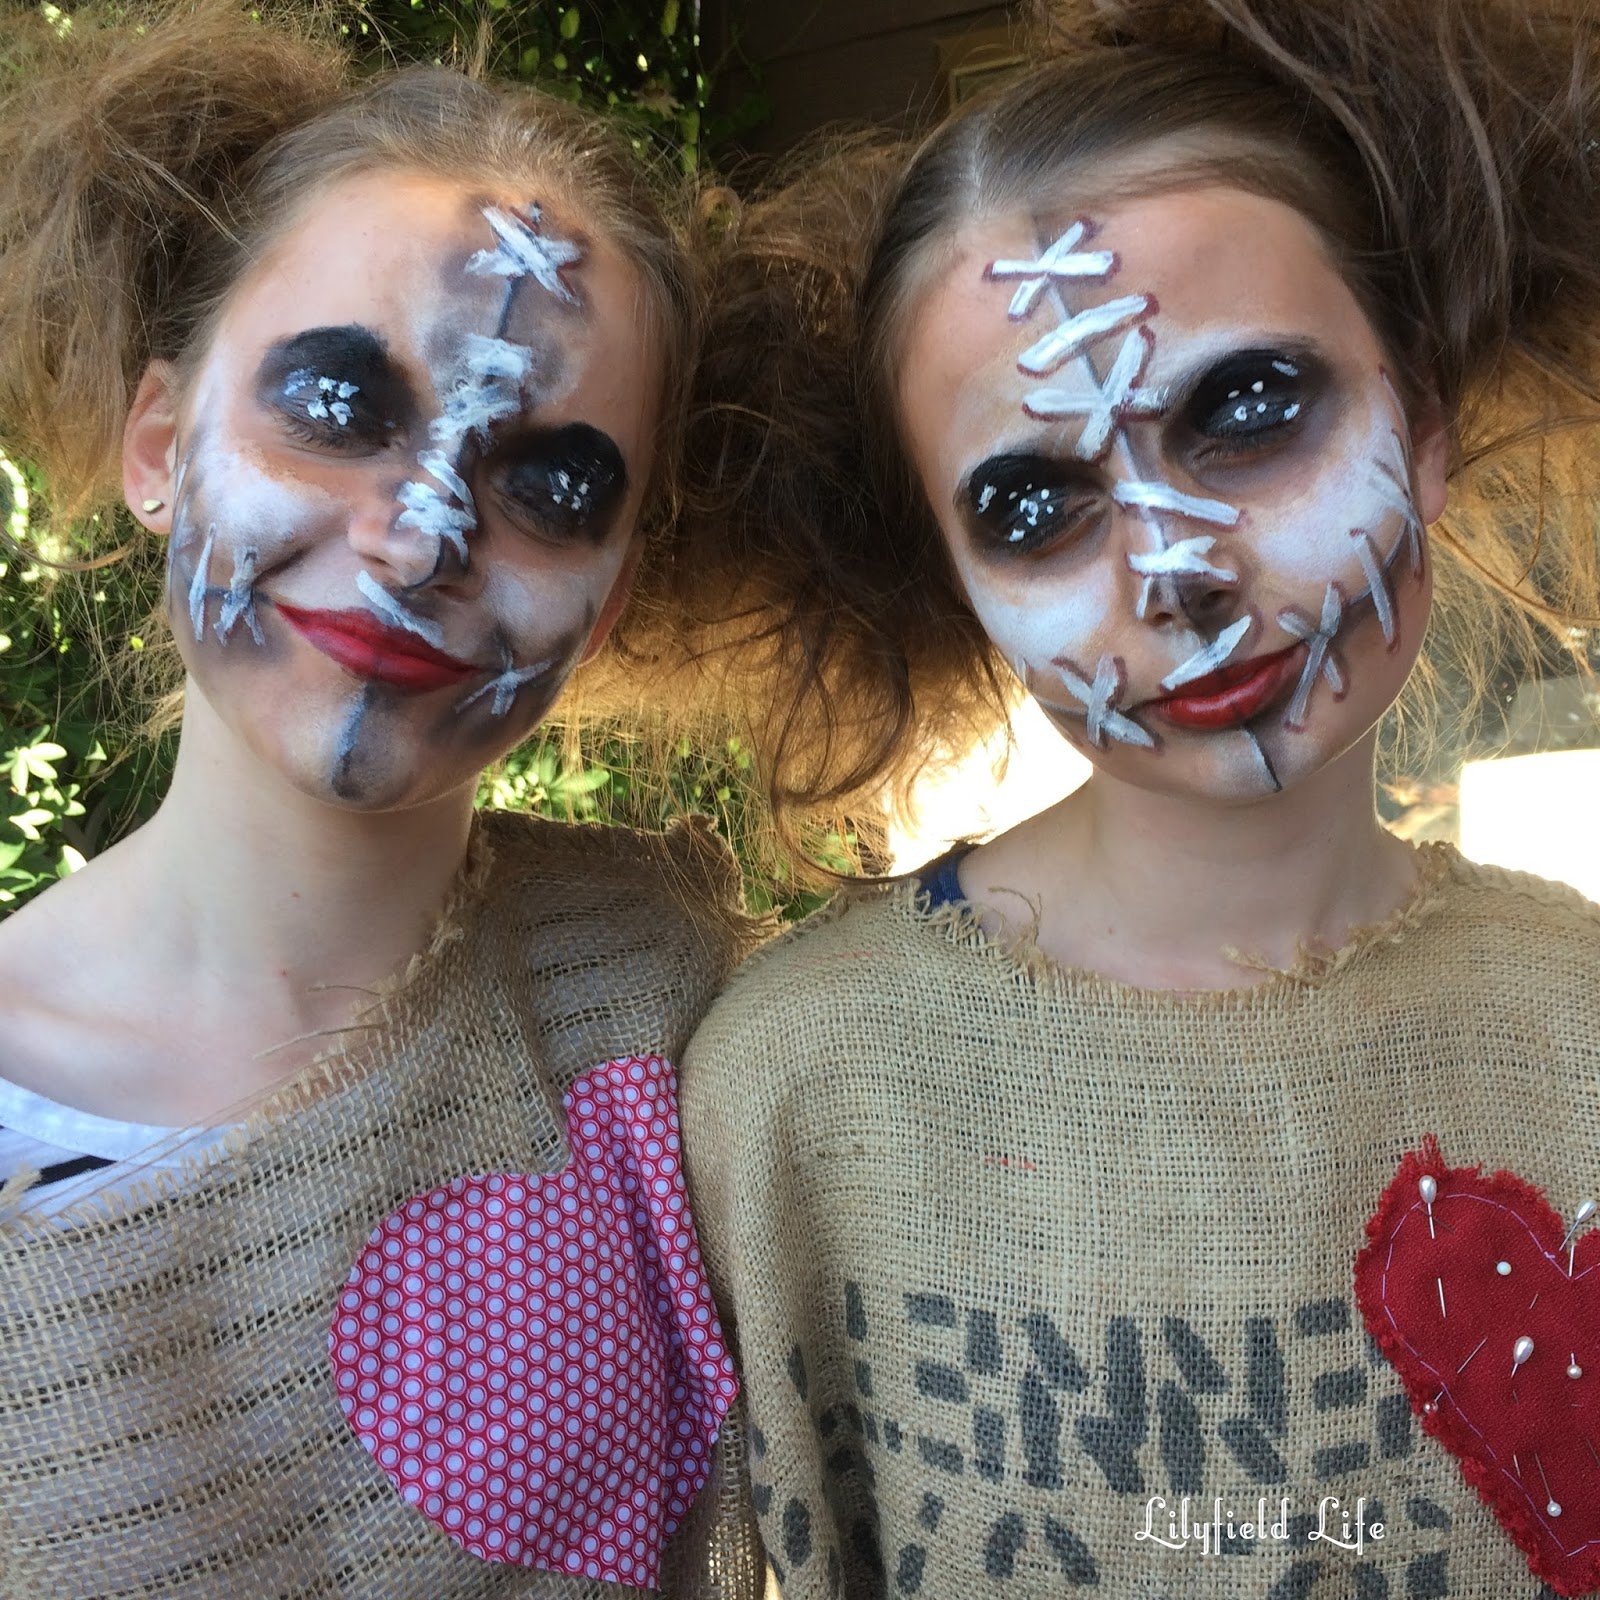 lilyfield life: latest pieces and my girl on halloween